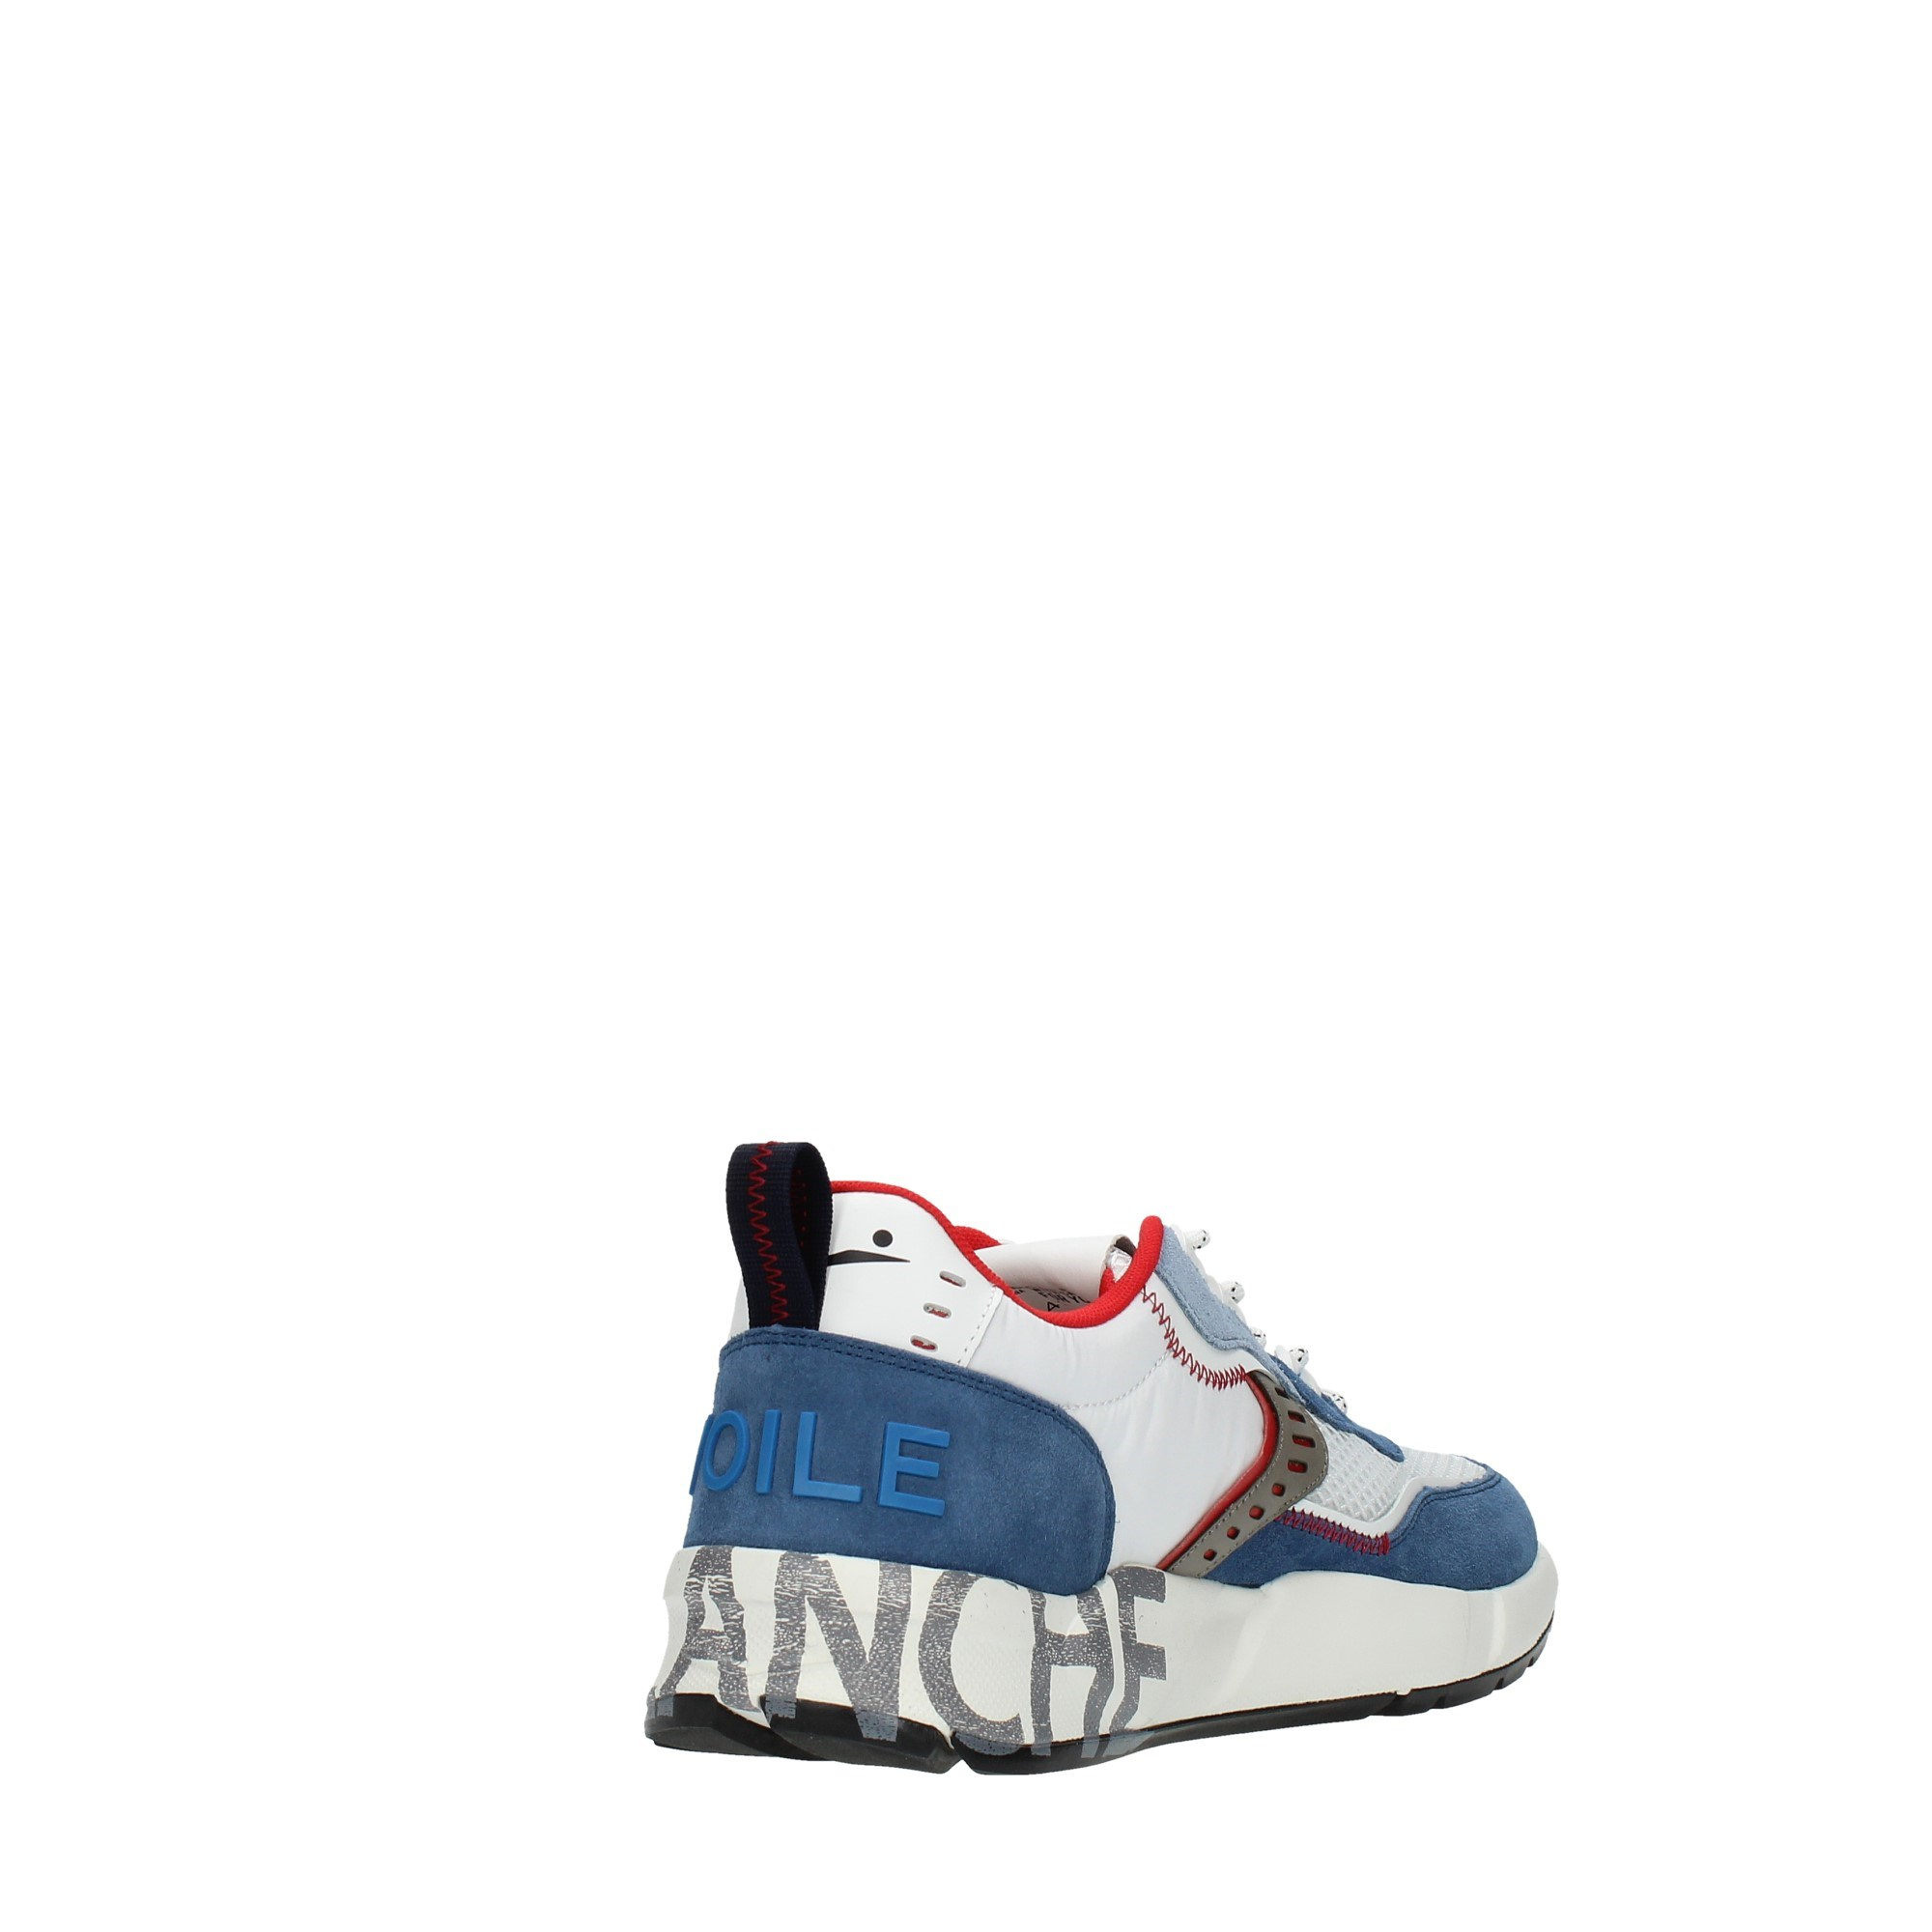 Voile Blanche Shoes Man Sneakers Blue CLUB01 SUEDE MESH NY